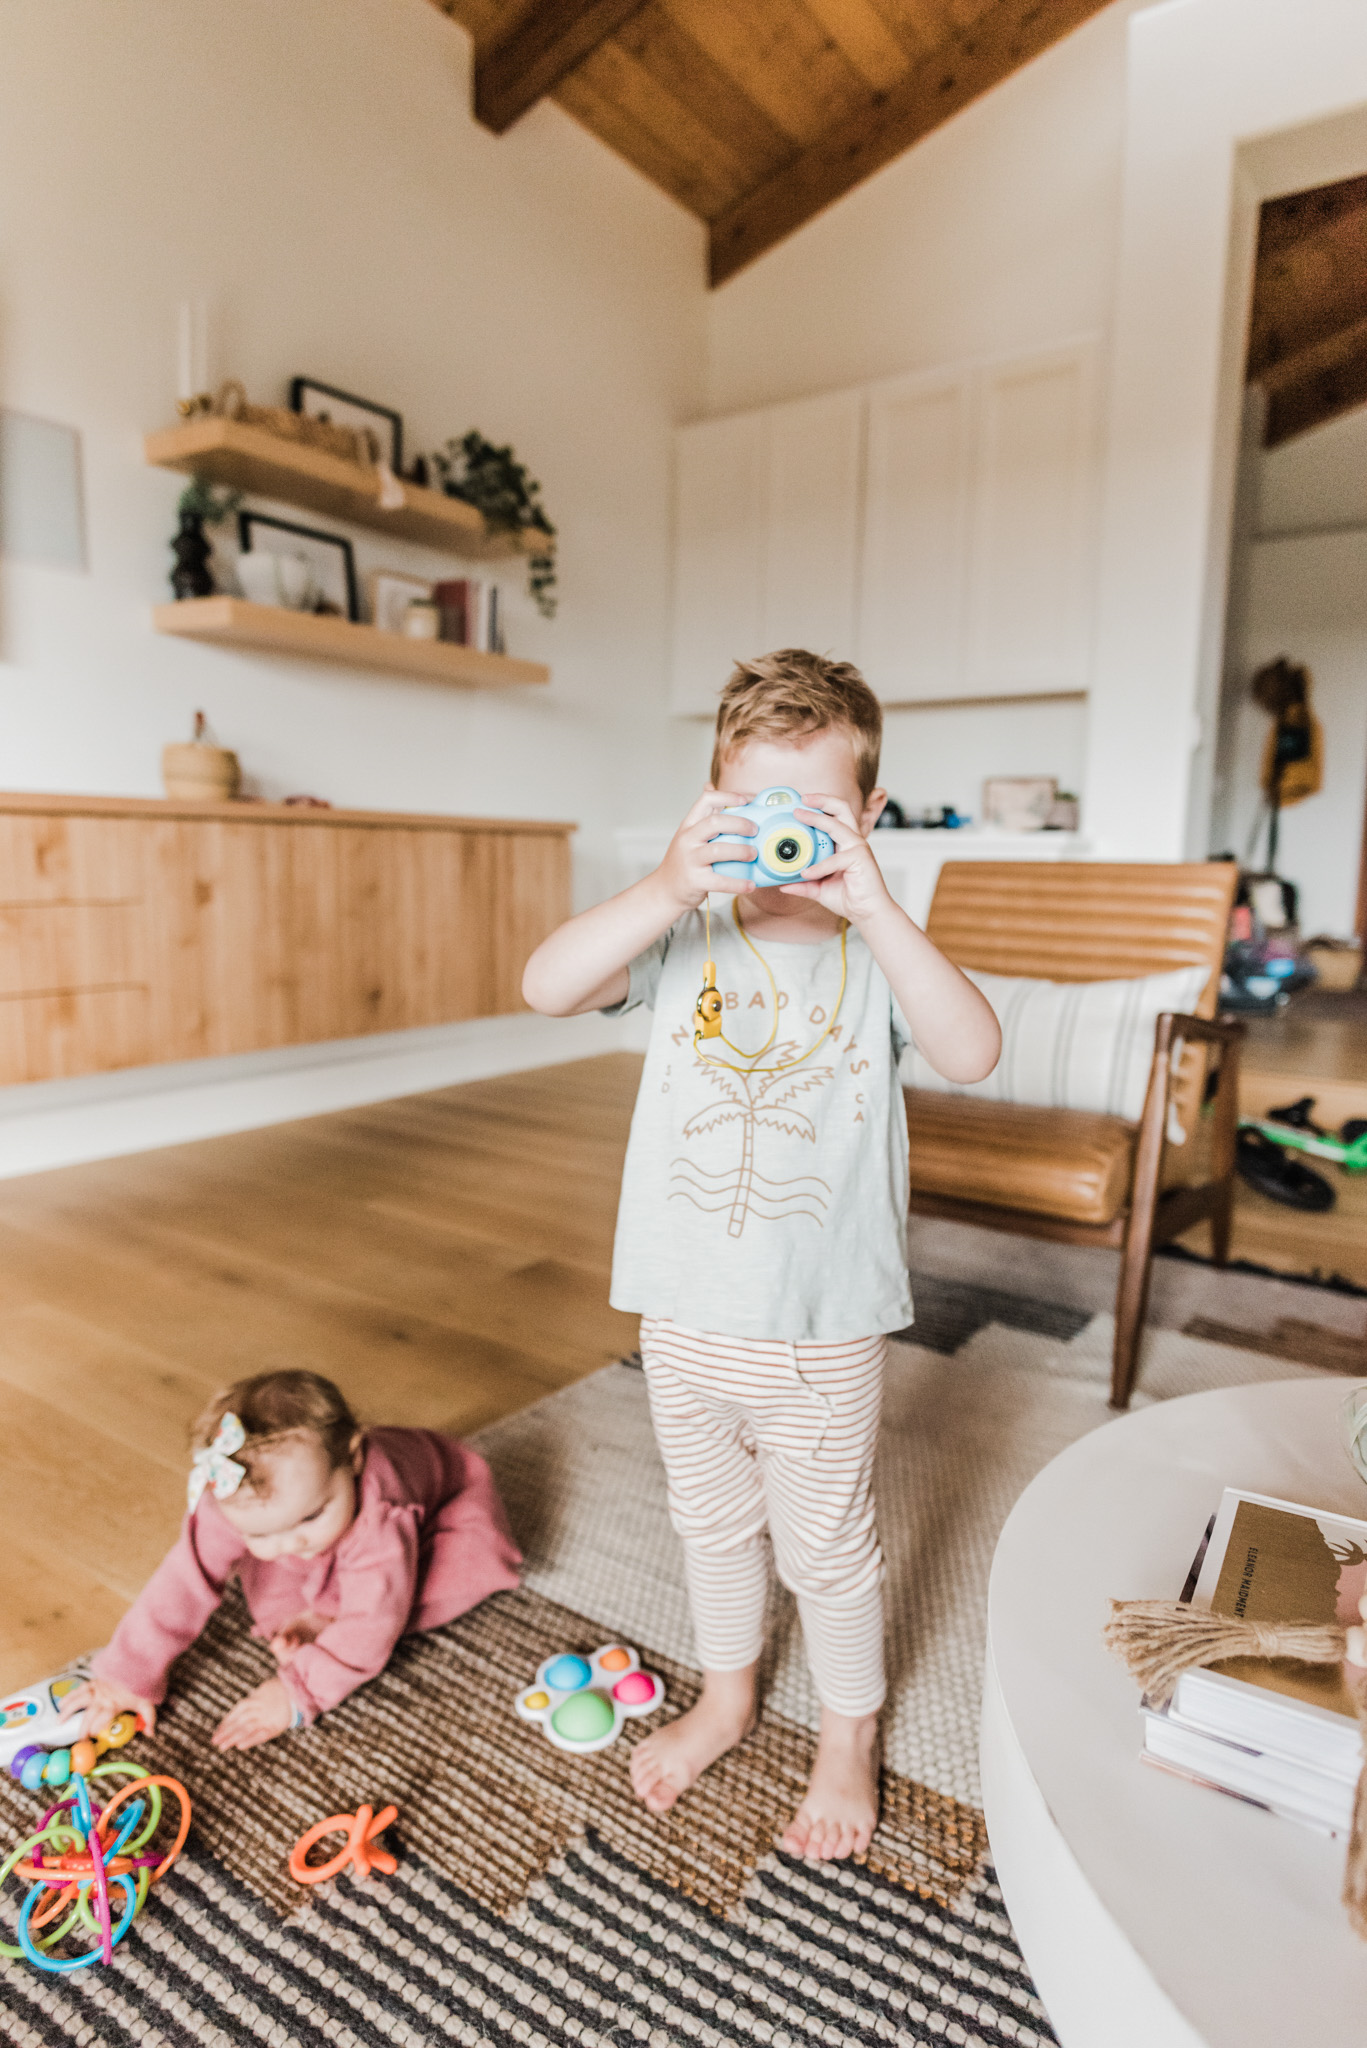 TODDLER EASTER BASKET GIFT IDEAS featured by top San Diego lifestyle blog, Navy Grace | Easter Basket Ideas for Toddlers by popular San Diego lifestyle blog, Navy Grace: image of a little boy holding a camera and a little girl playing with some toys on the floor.